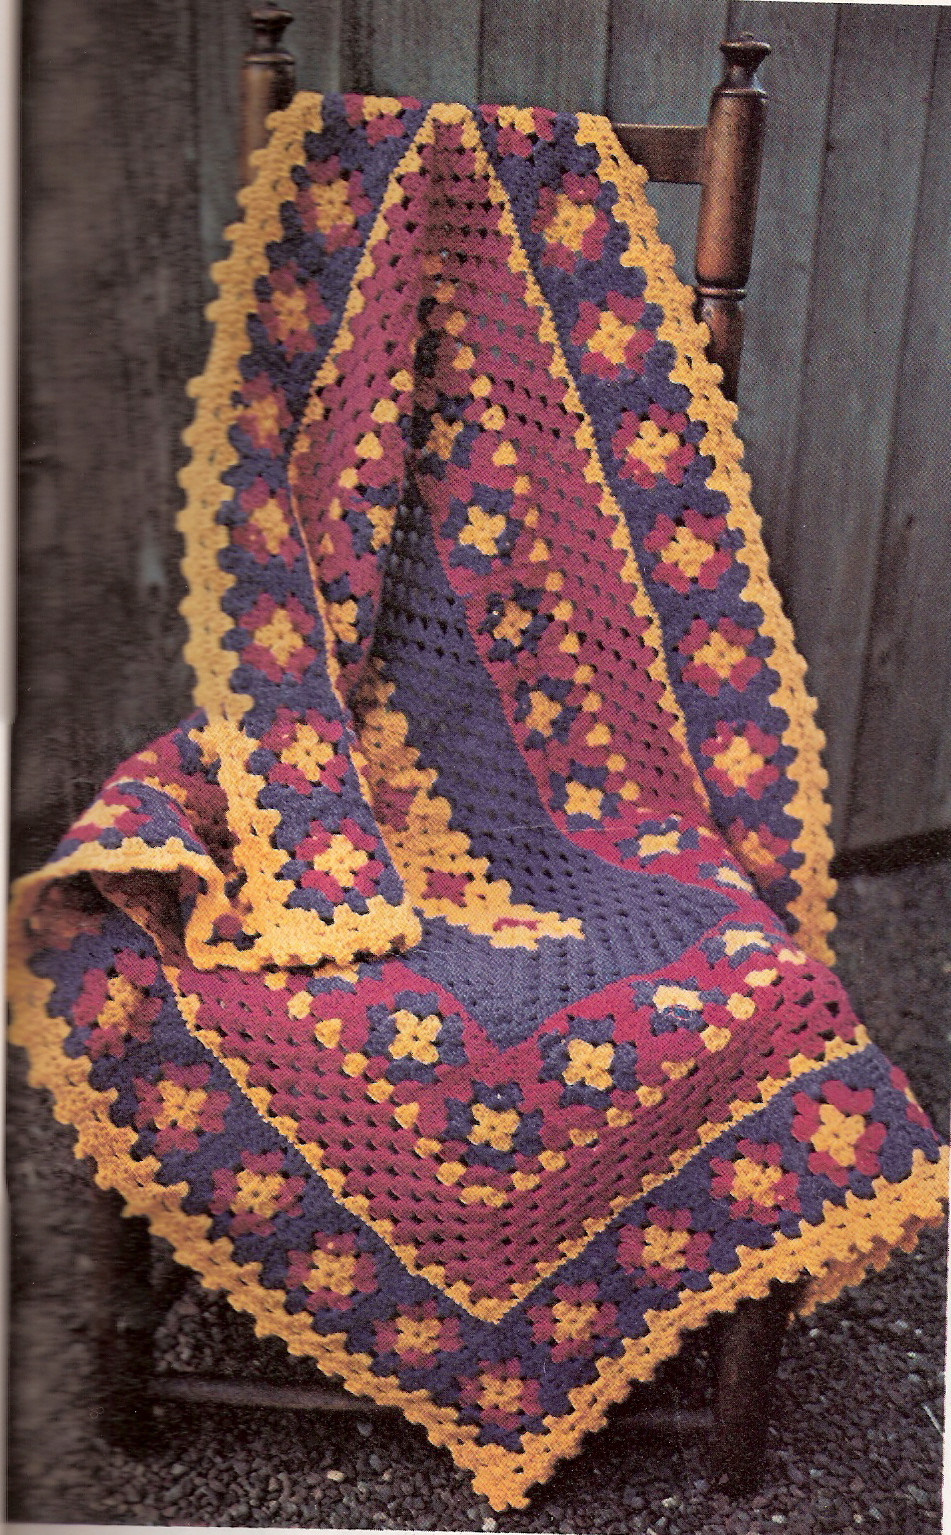 Afghan Square Crochet Patterns Lovely Granny Square Crib Afghan Of Amazing 50 Pics Afghan Square Crochet Patterns